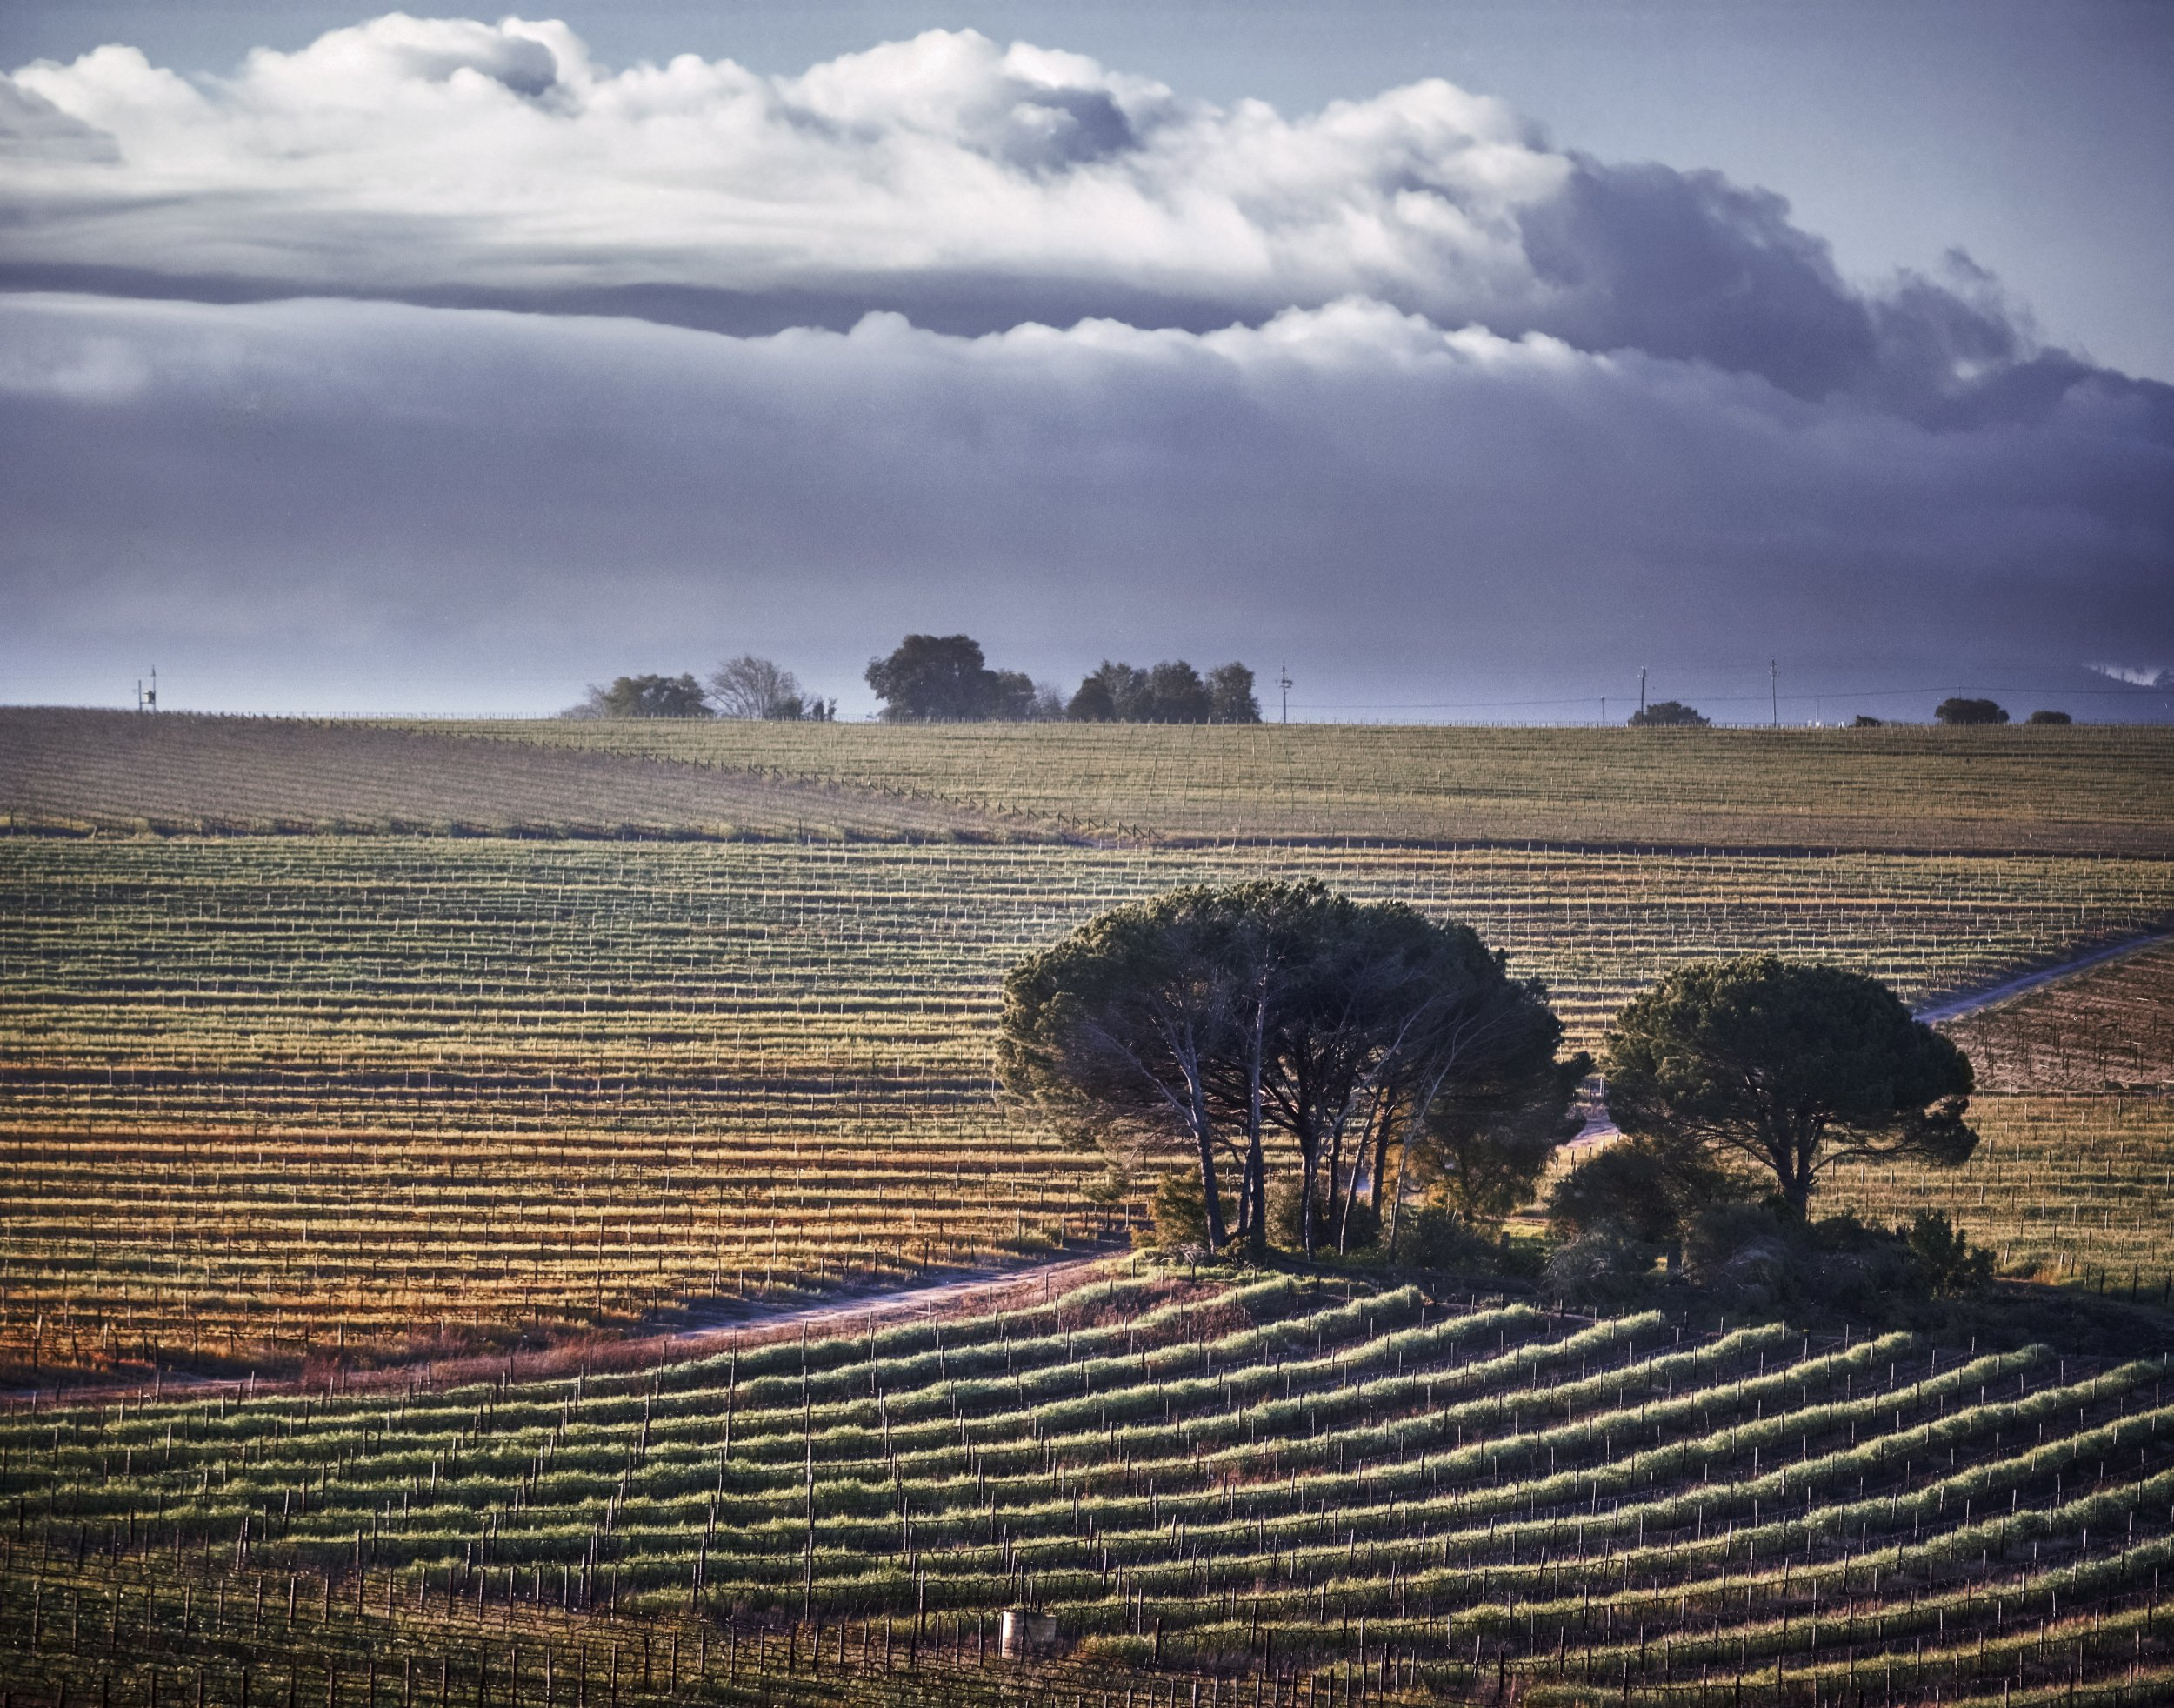 02_26_CapeWinelands_01